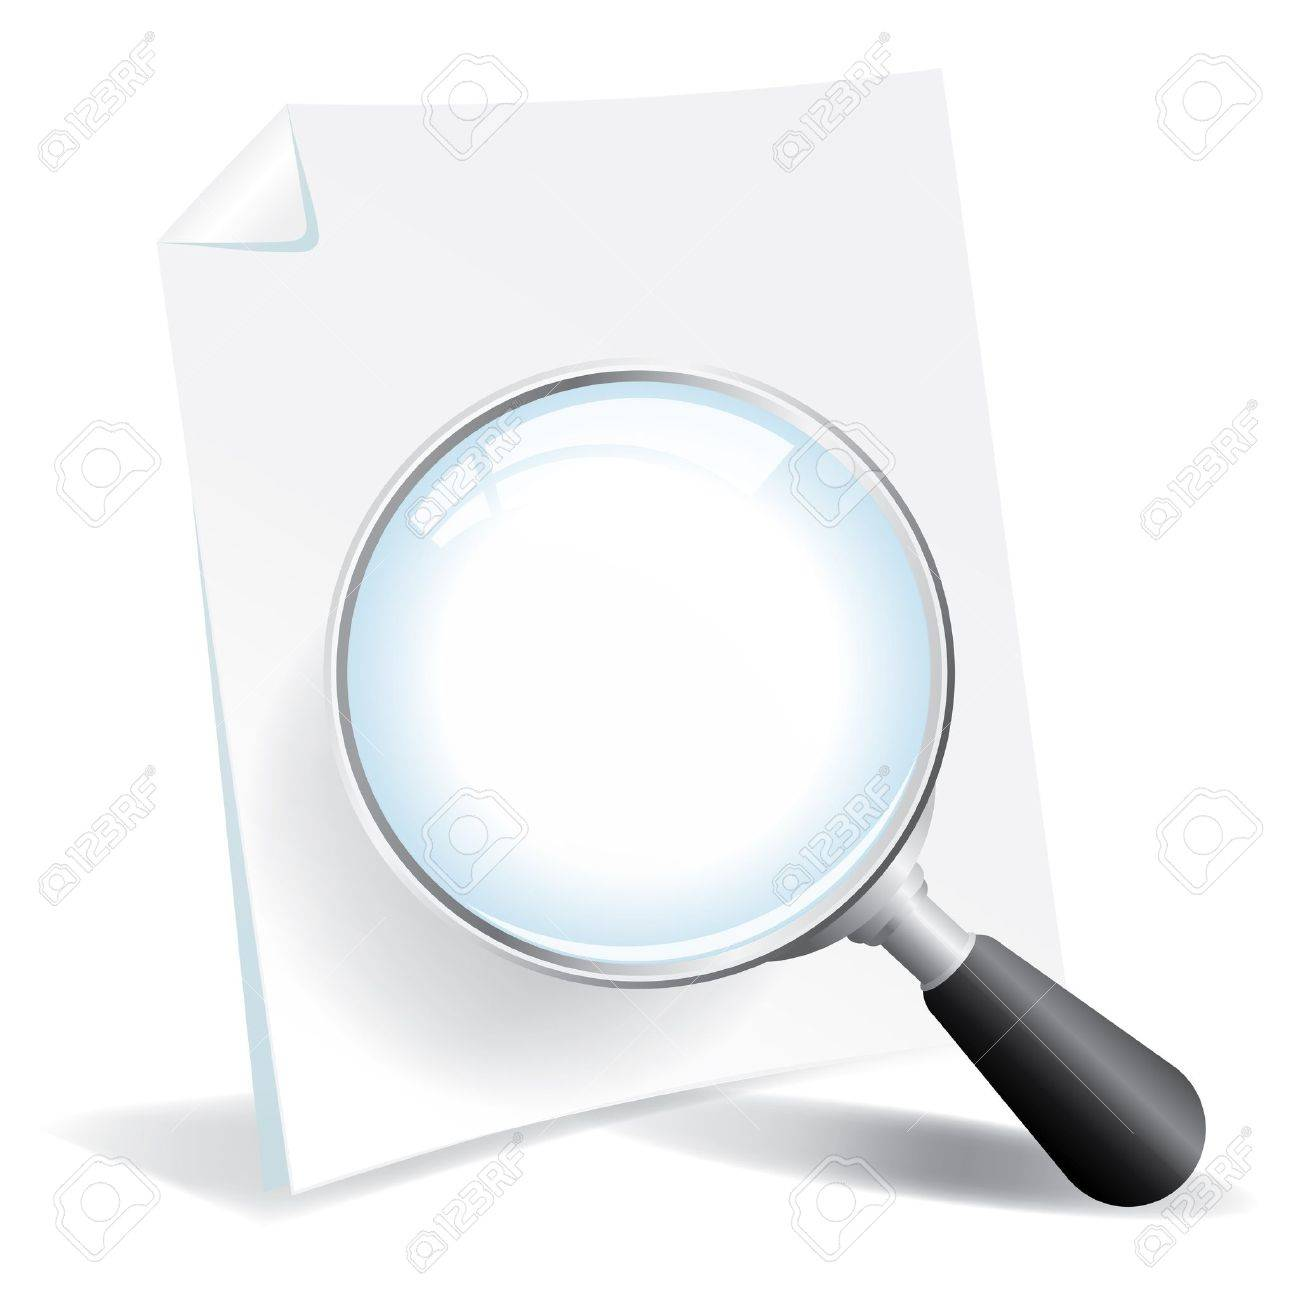 Examing a document with a magnifying glass Stock Vector - 18358433